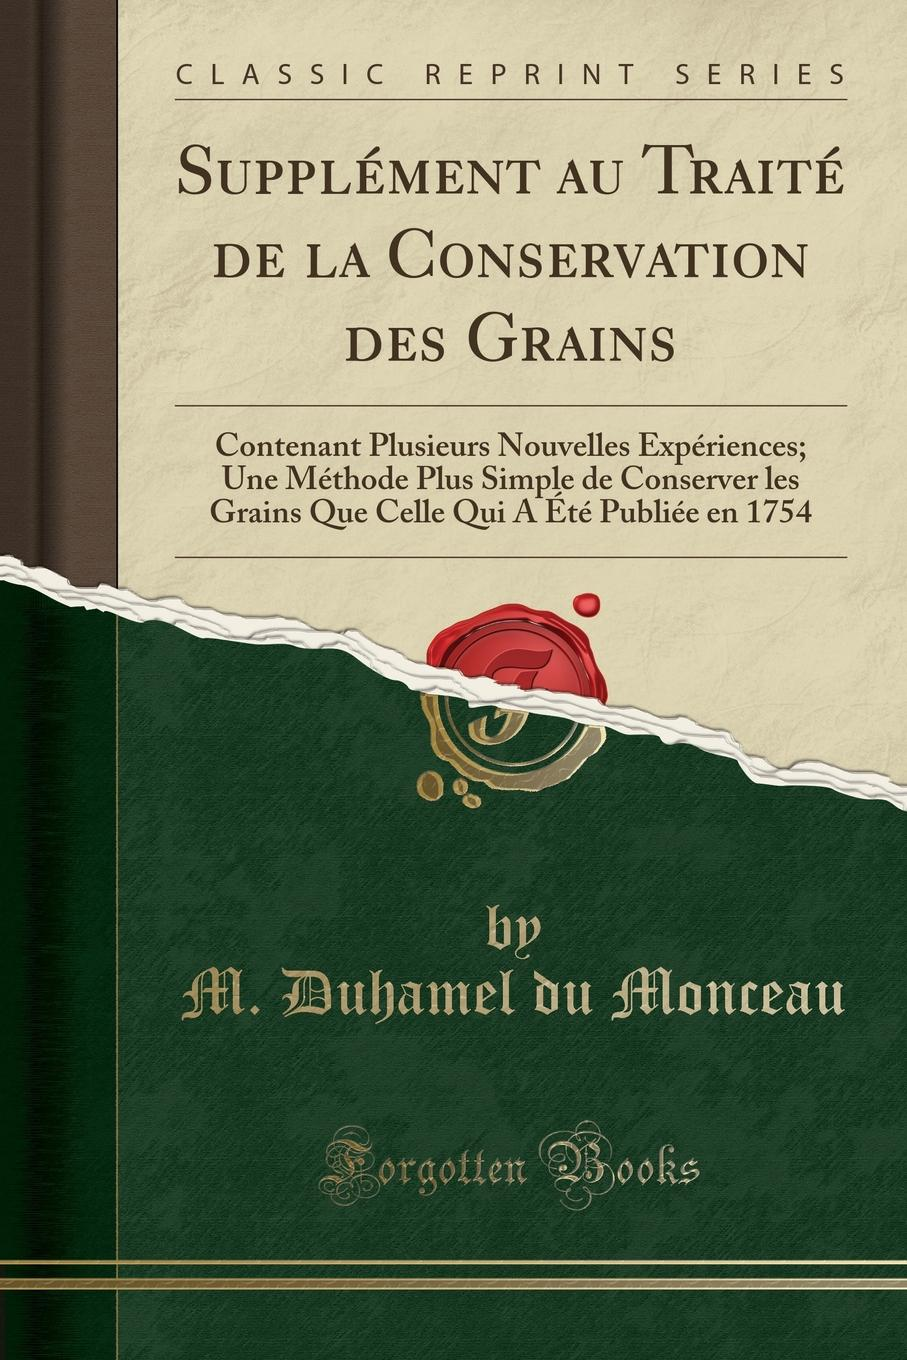 Supplement au Traite de la Conservation des Grains. Contenant Plusieurs Nouvelles Experiences; Une Methode Plus Simple de Conserver les Grains Que Celle Qui A Ete Publiee en 1754 (Classic Reprint) Excerpt from SupplР?ment au TraitР? de la Conservation des Grains...